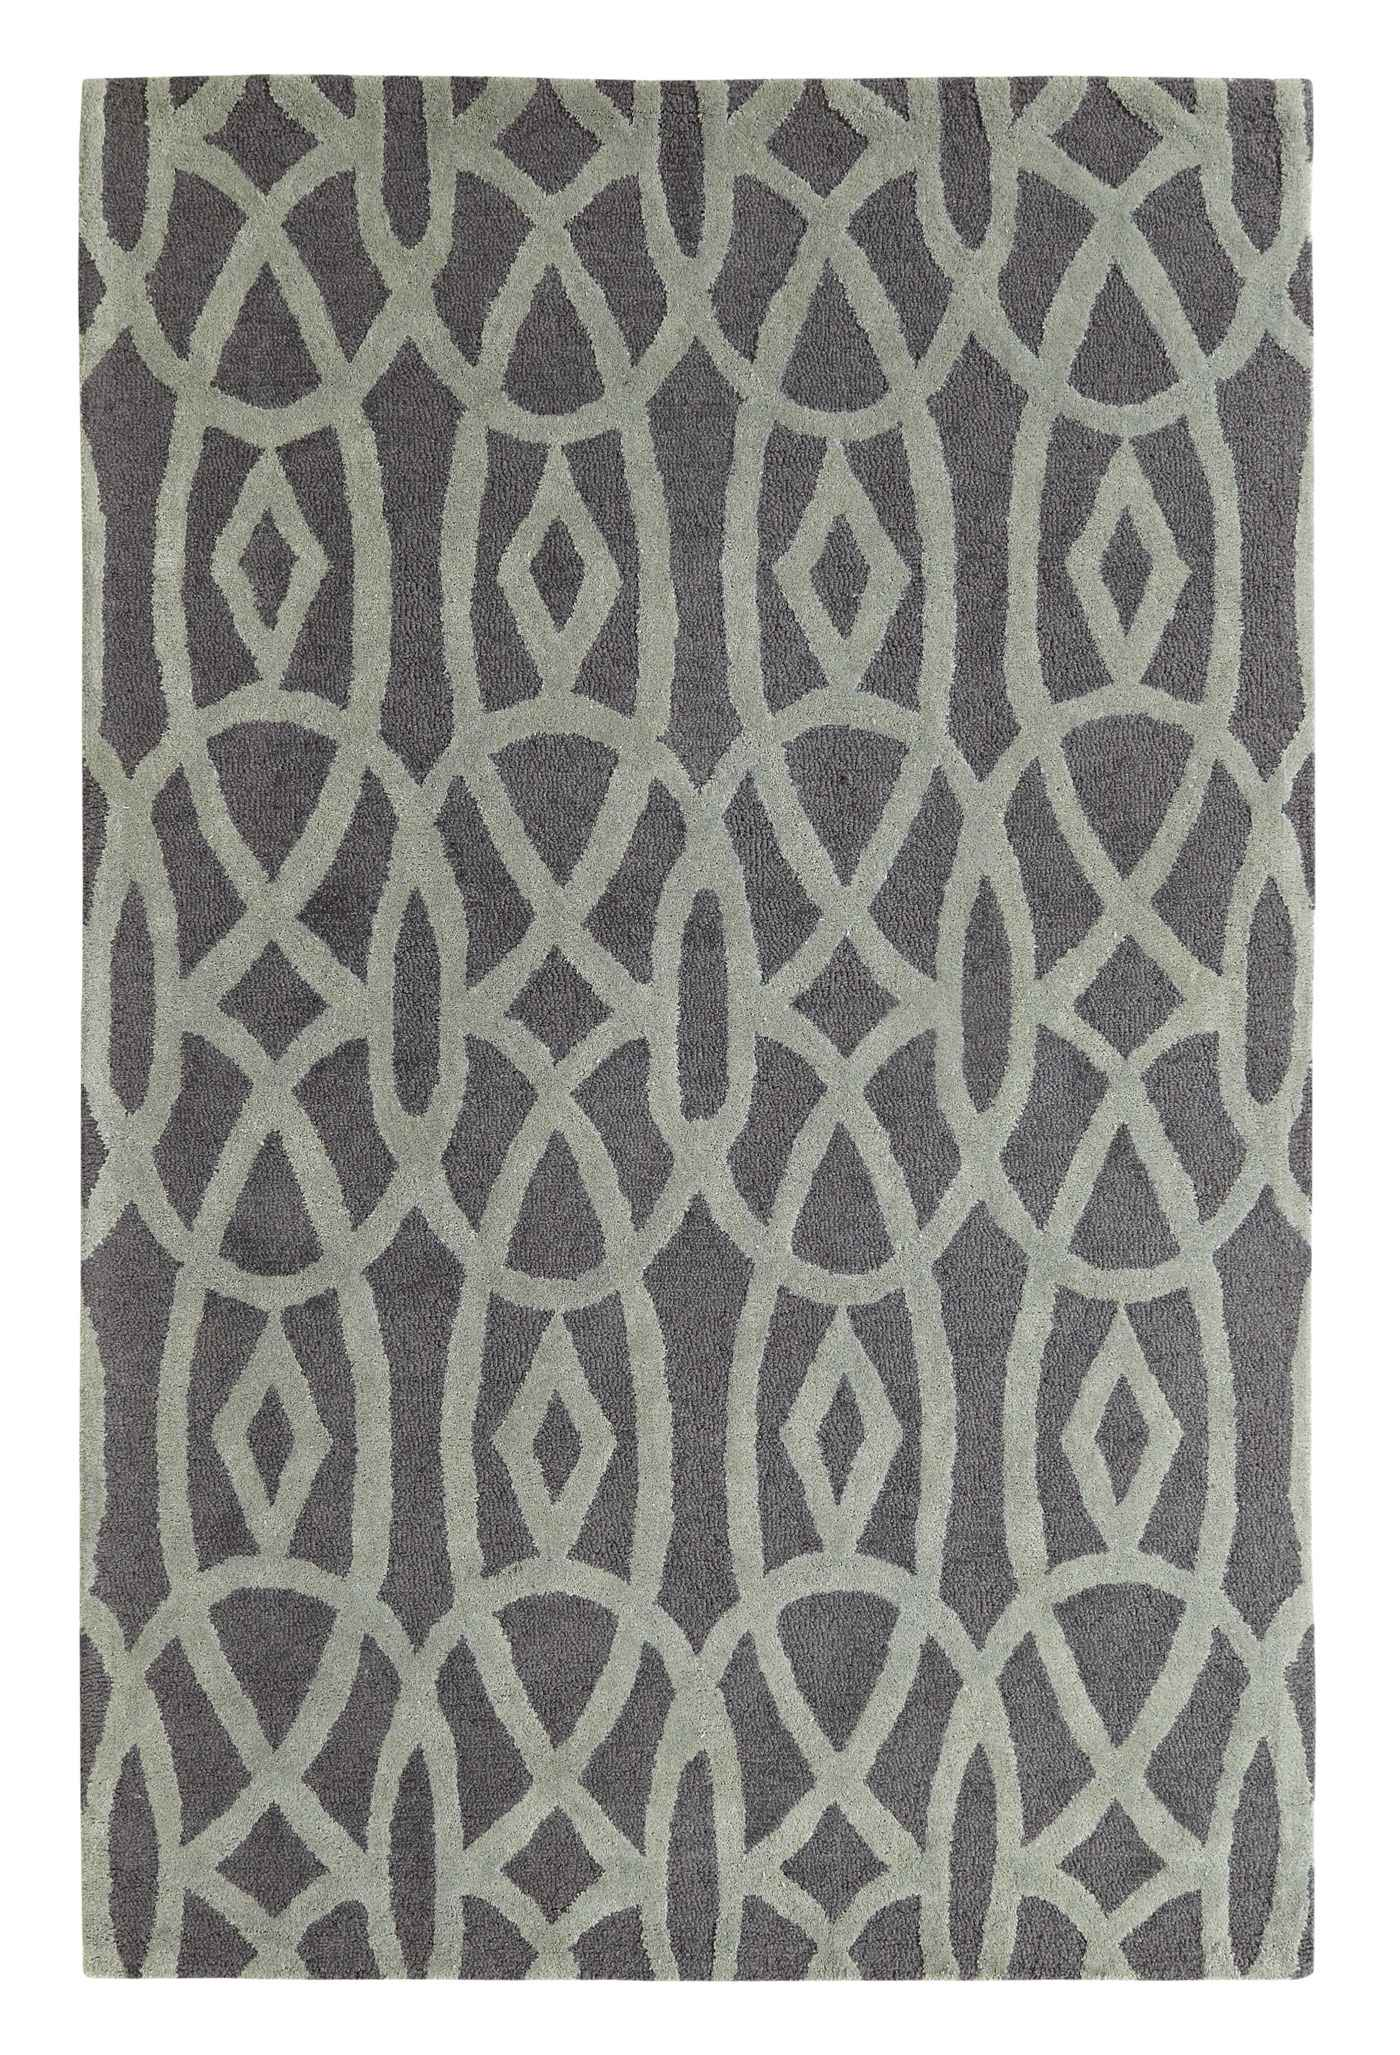 Dynamic Rugs Palace Geometric Grey 5570 Area Rug